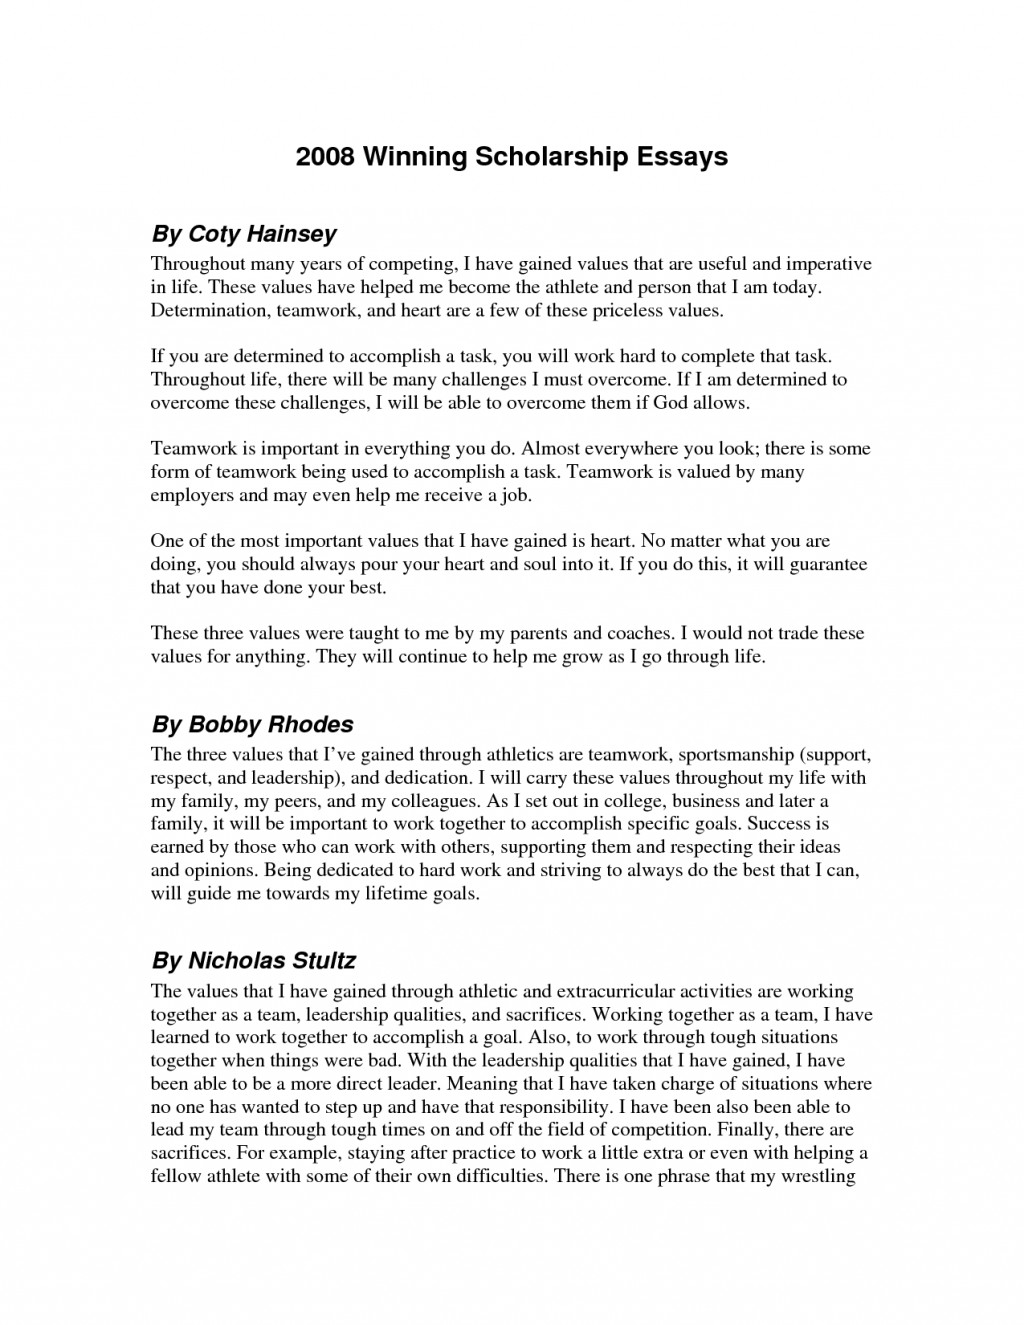 020 Essay Example Awesome Collection Of Best Scholarship Guidelines Unique What Do You Value Scholarships With Singular Essays Without Writing For High School Juniors Class 2020 No 2019 Large